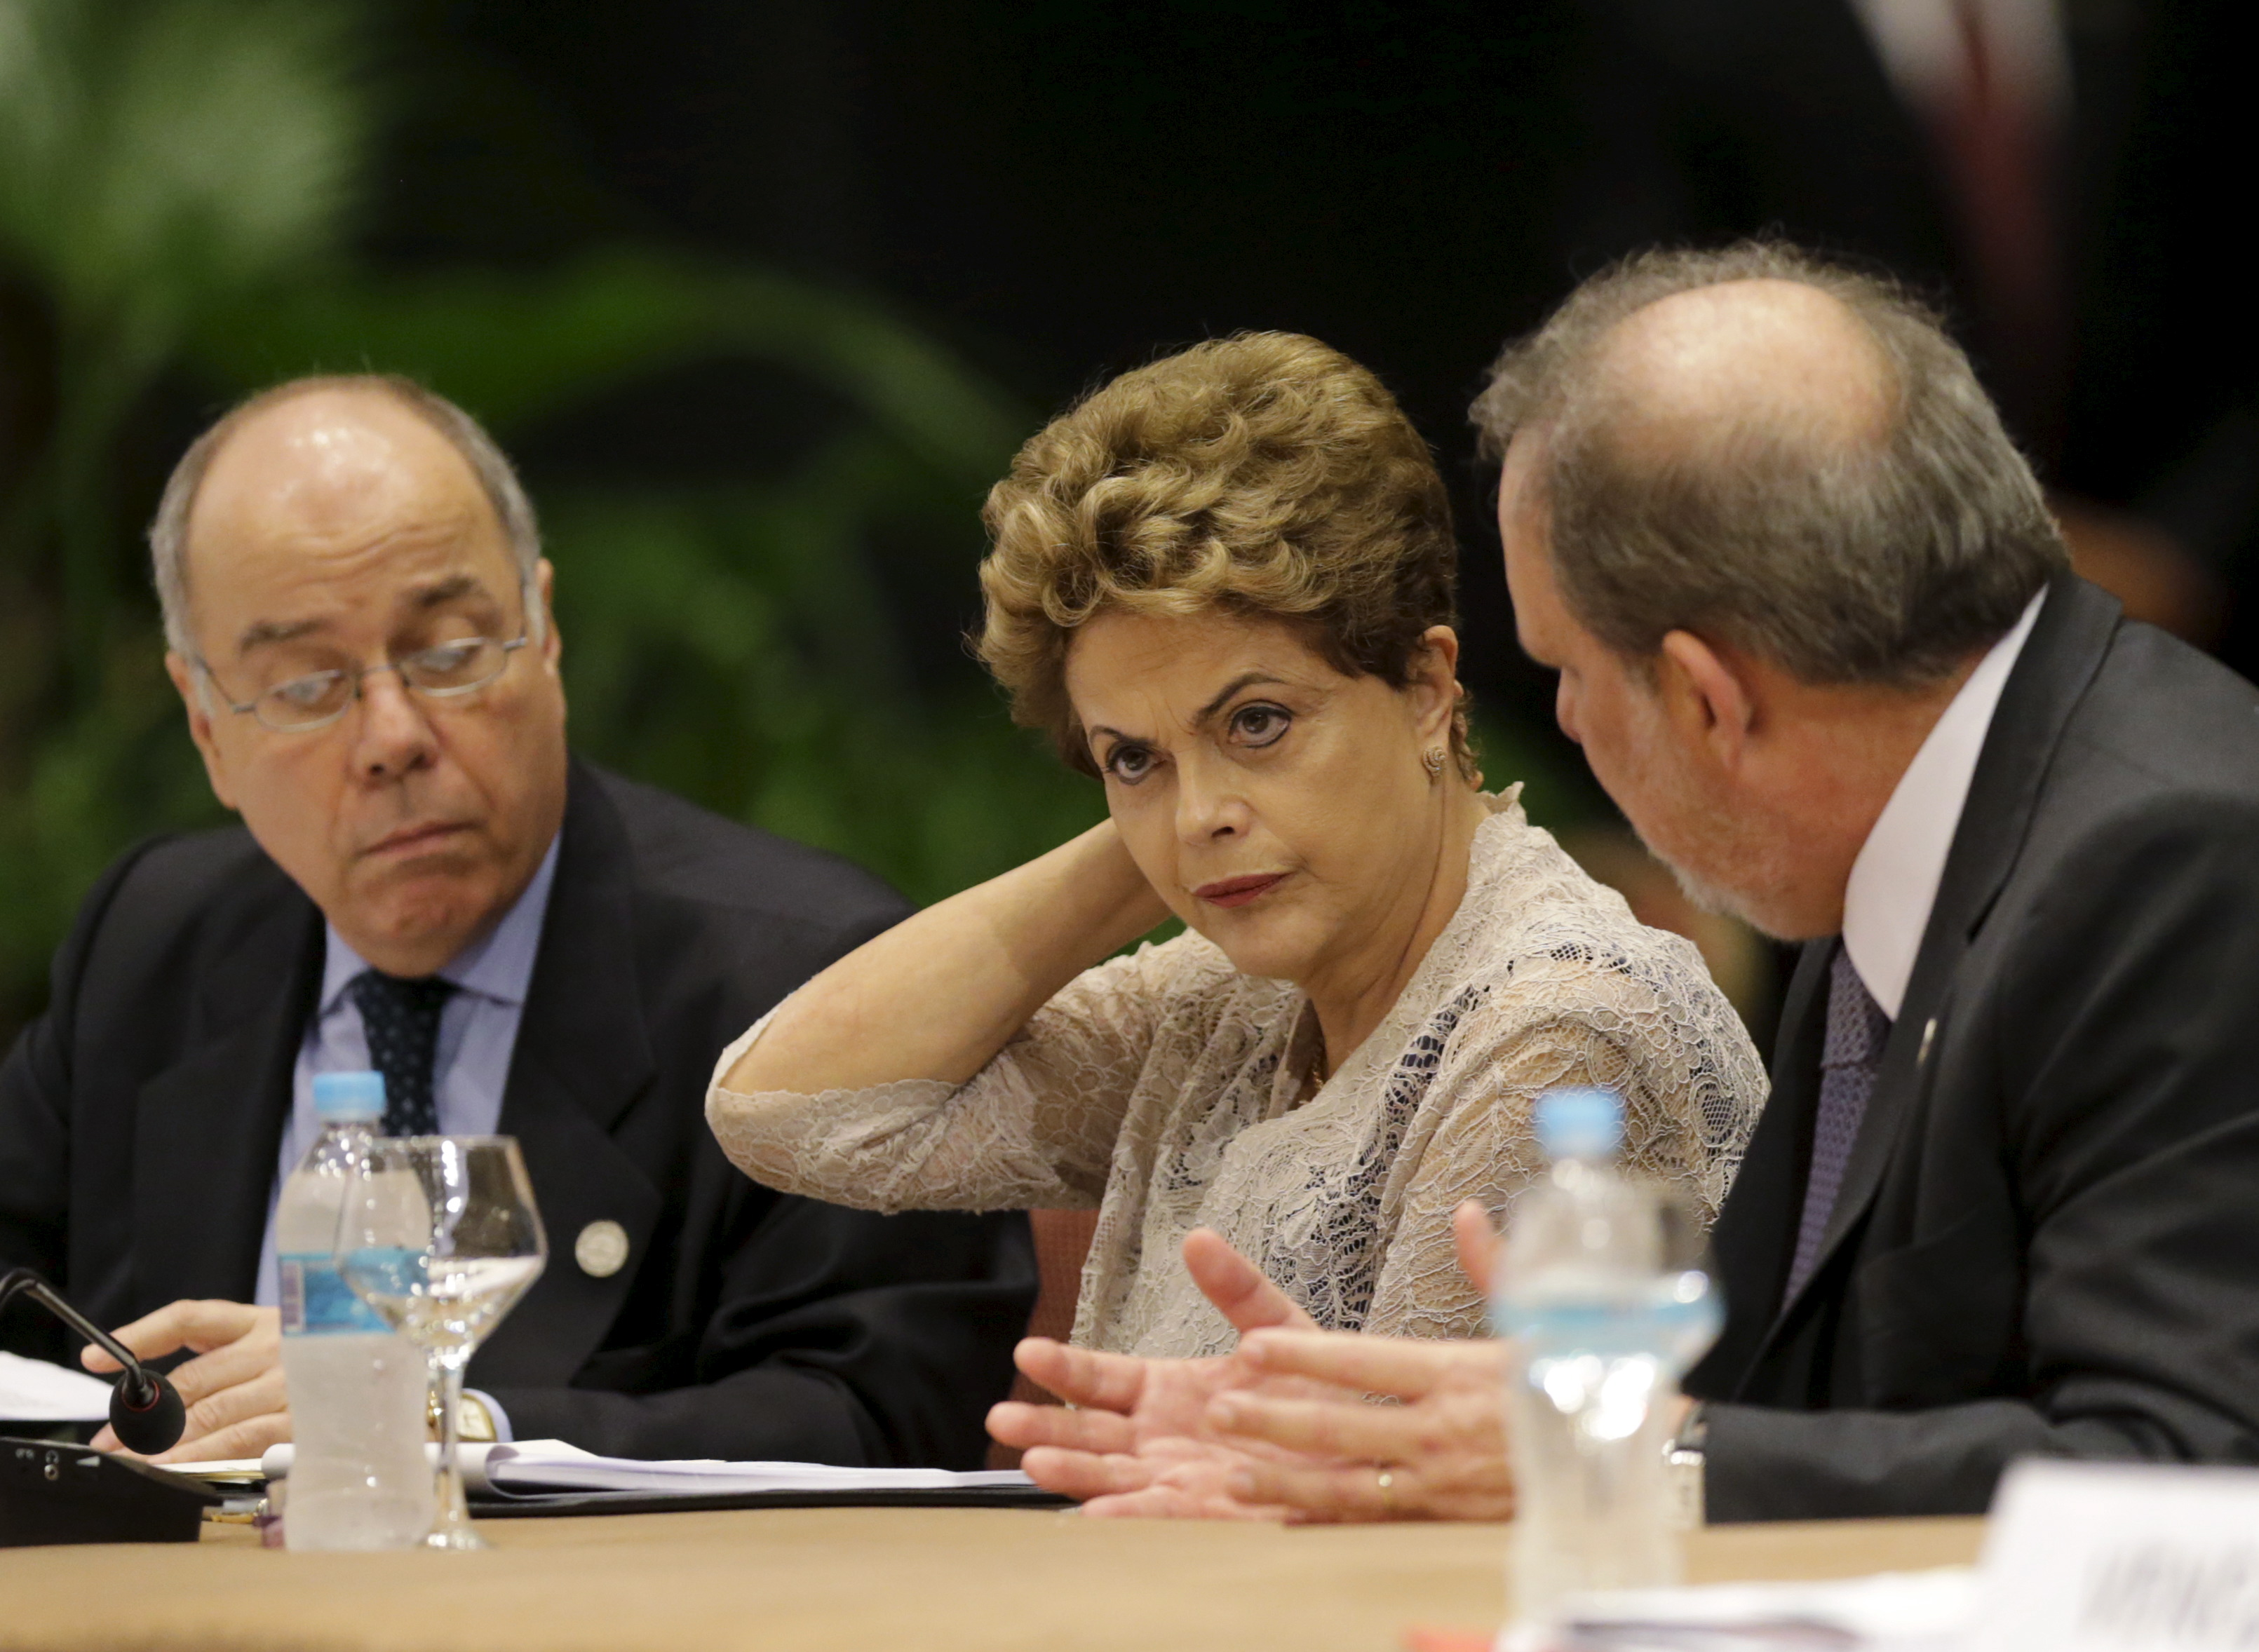 Brazil's Foreign Minister Mauro Viera (L), Brazil's President Dilma Rousseff (C) and Brazil's Minister for Development, Industry and Trade Armando Monteiro attend a session of the Summit of Heads of State of MERCOSUR and Associated States and 49th Meeting of the Common Market Council in Luque, Paraguay.